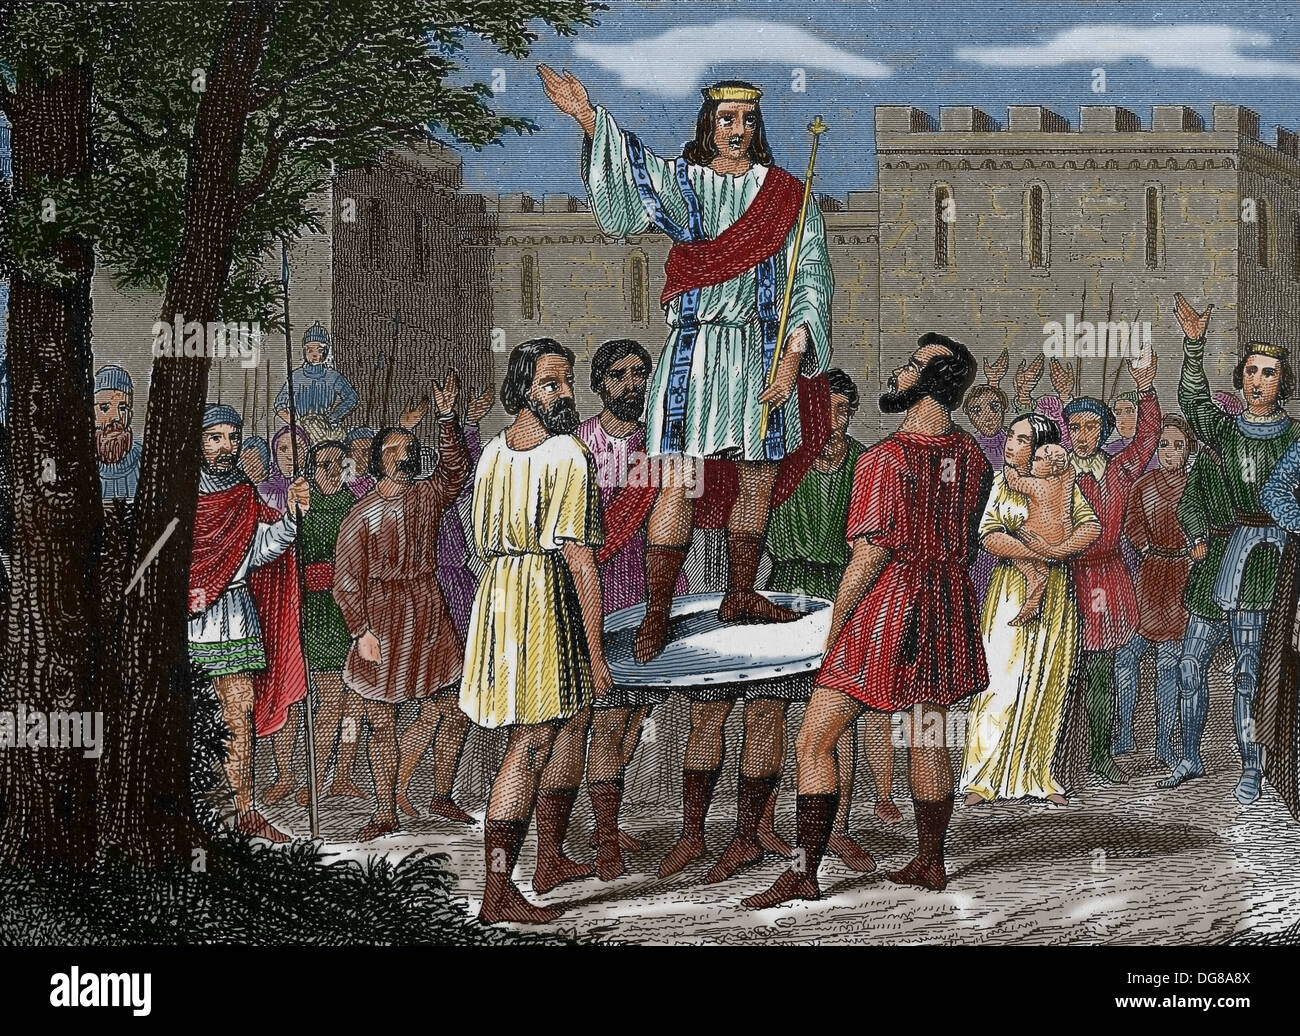 Early Middle Ages. Election of commander. Engraving. (Later colouration). - Stock Image